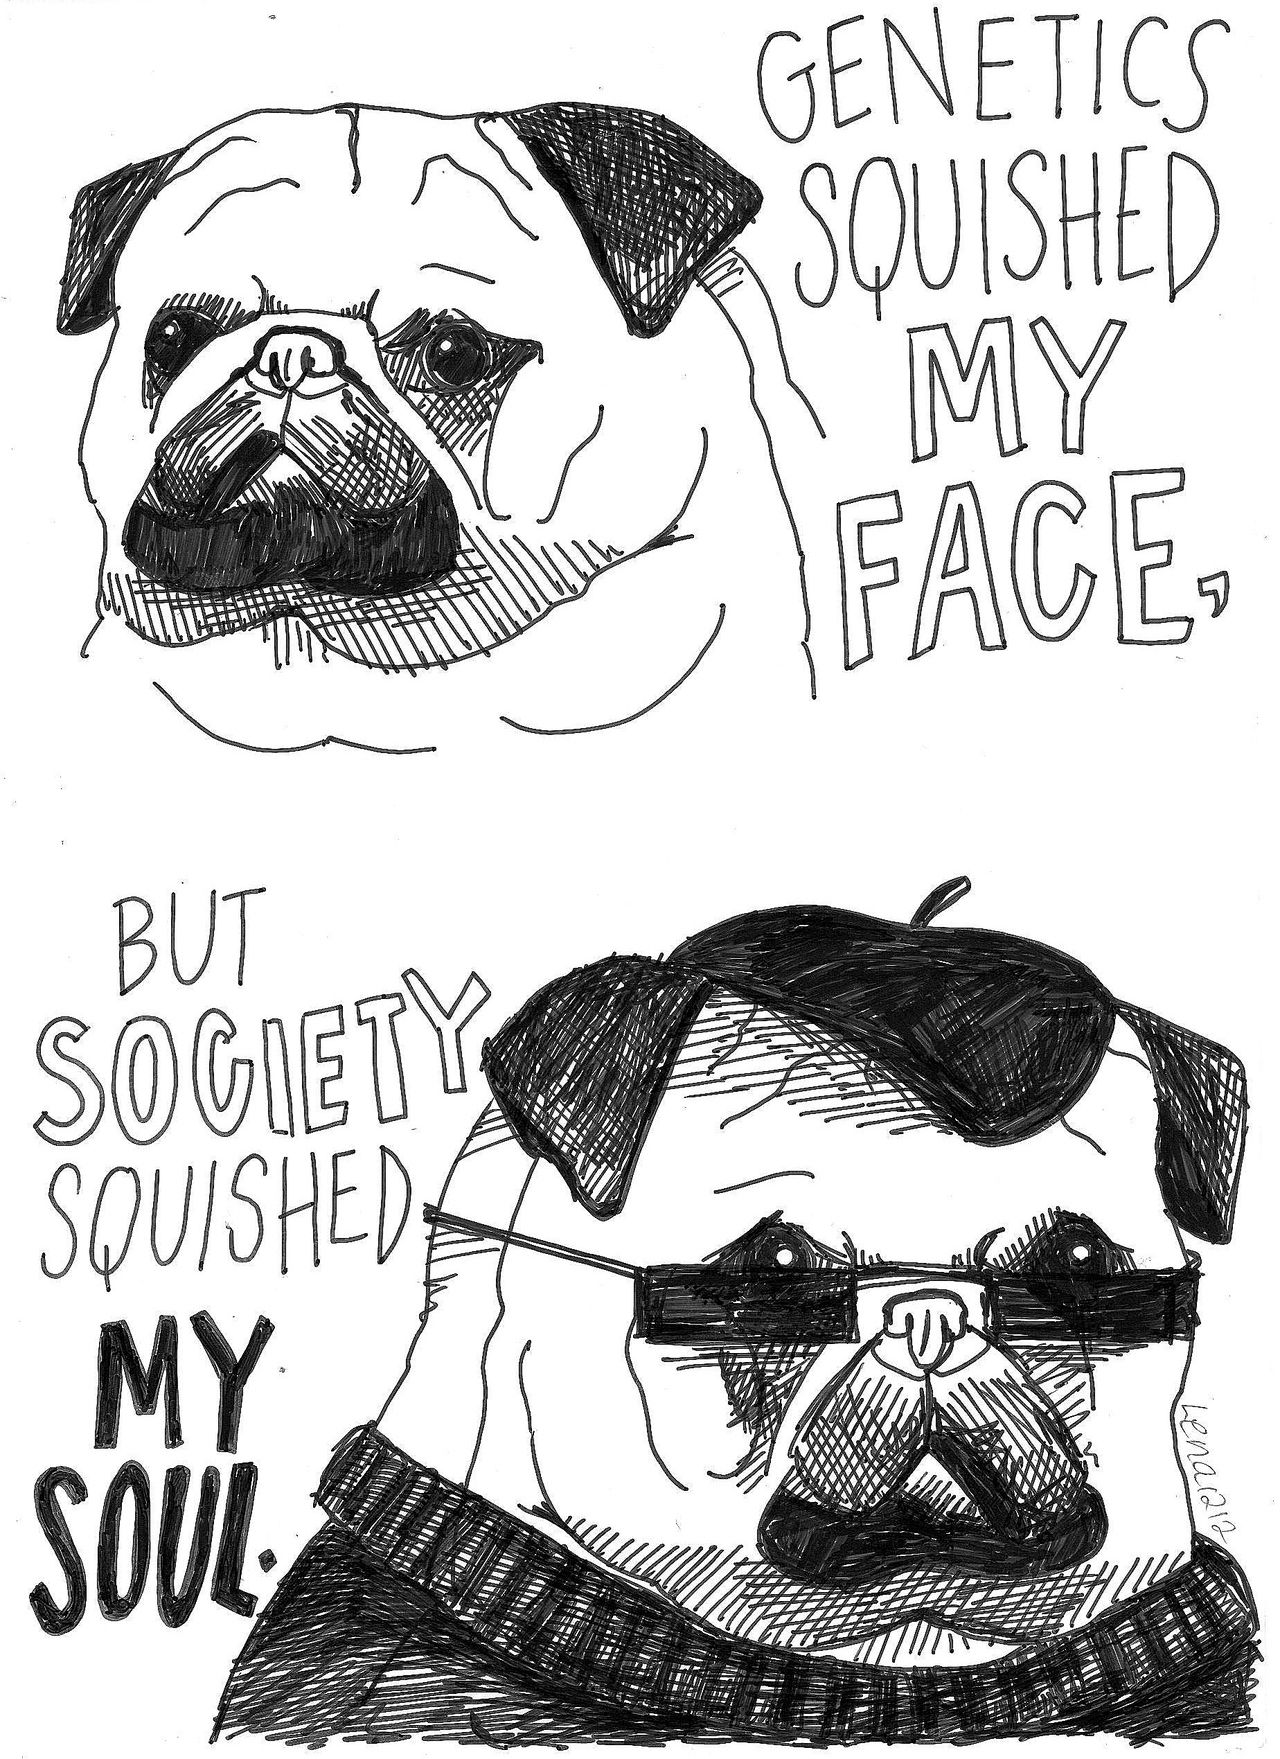 Society Squished My Soul Pugs Pug Love Pugs Kisses